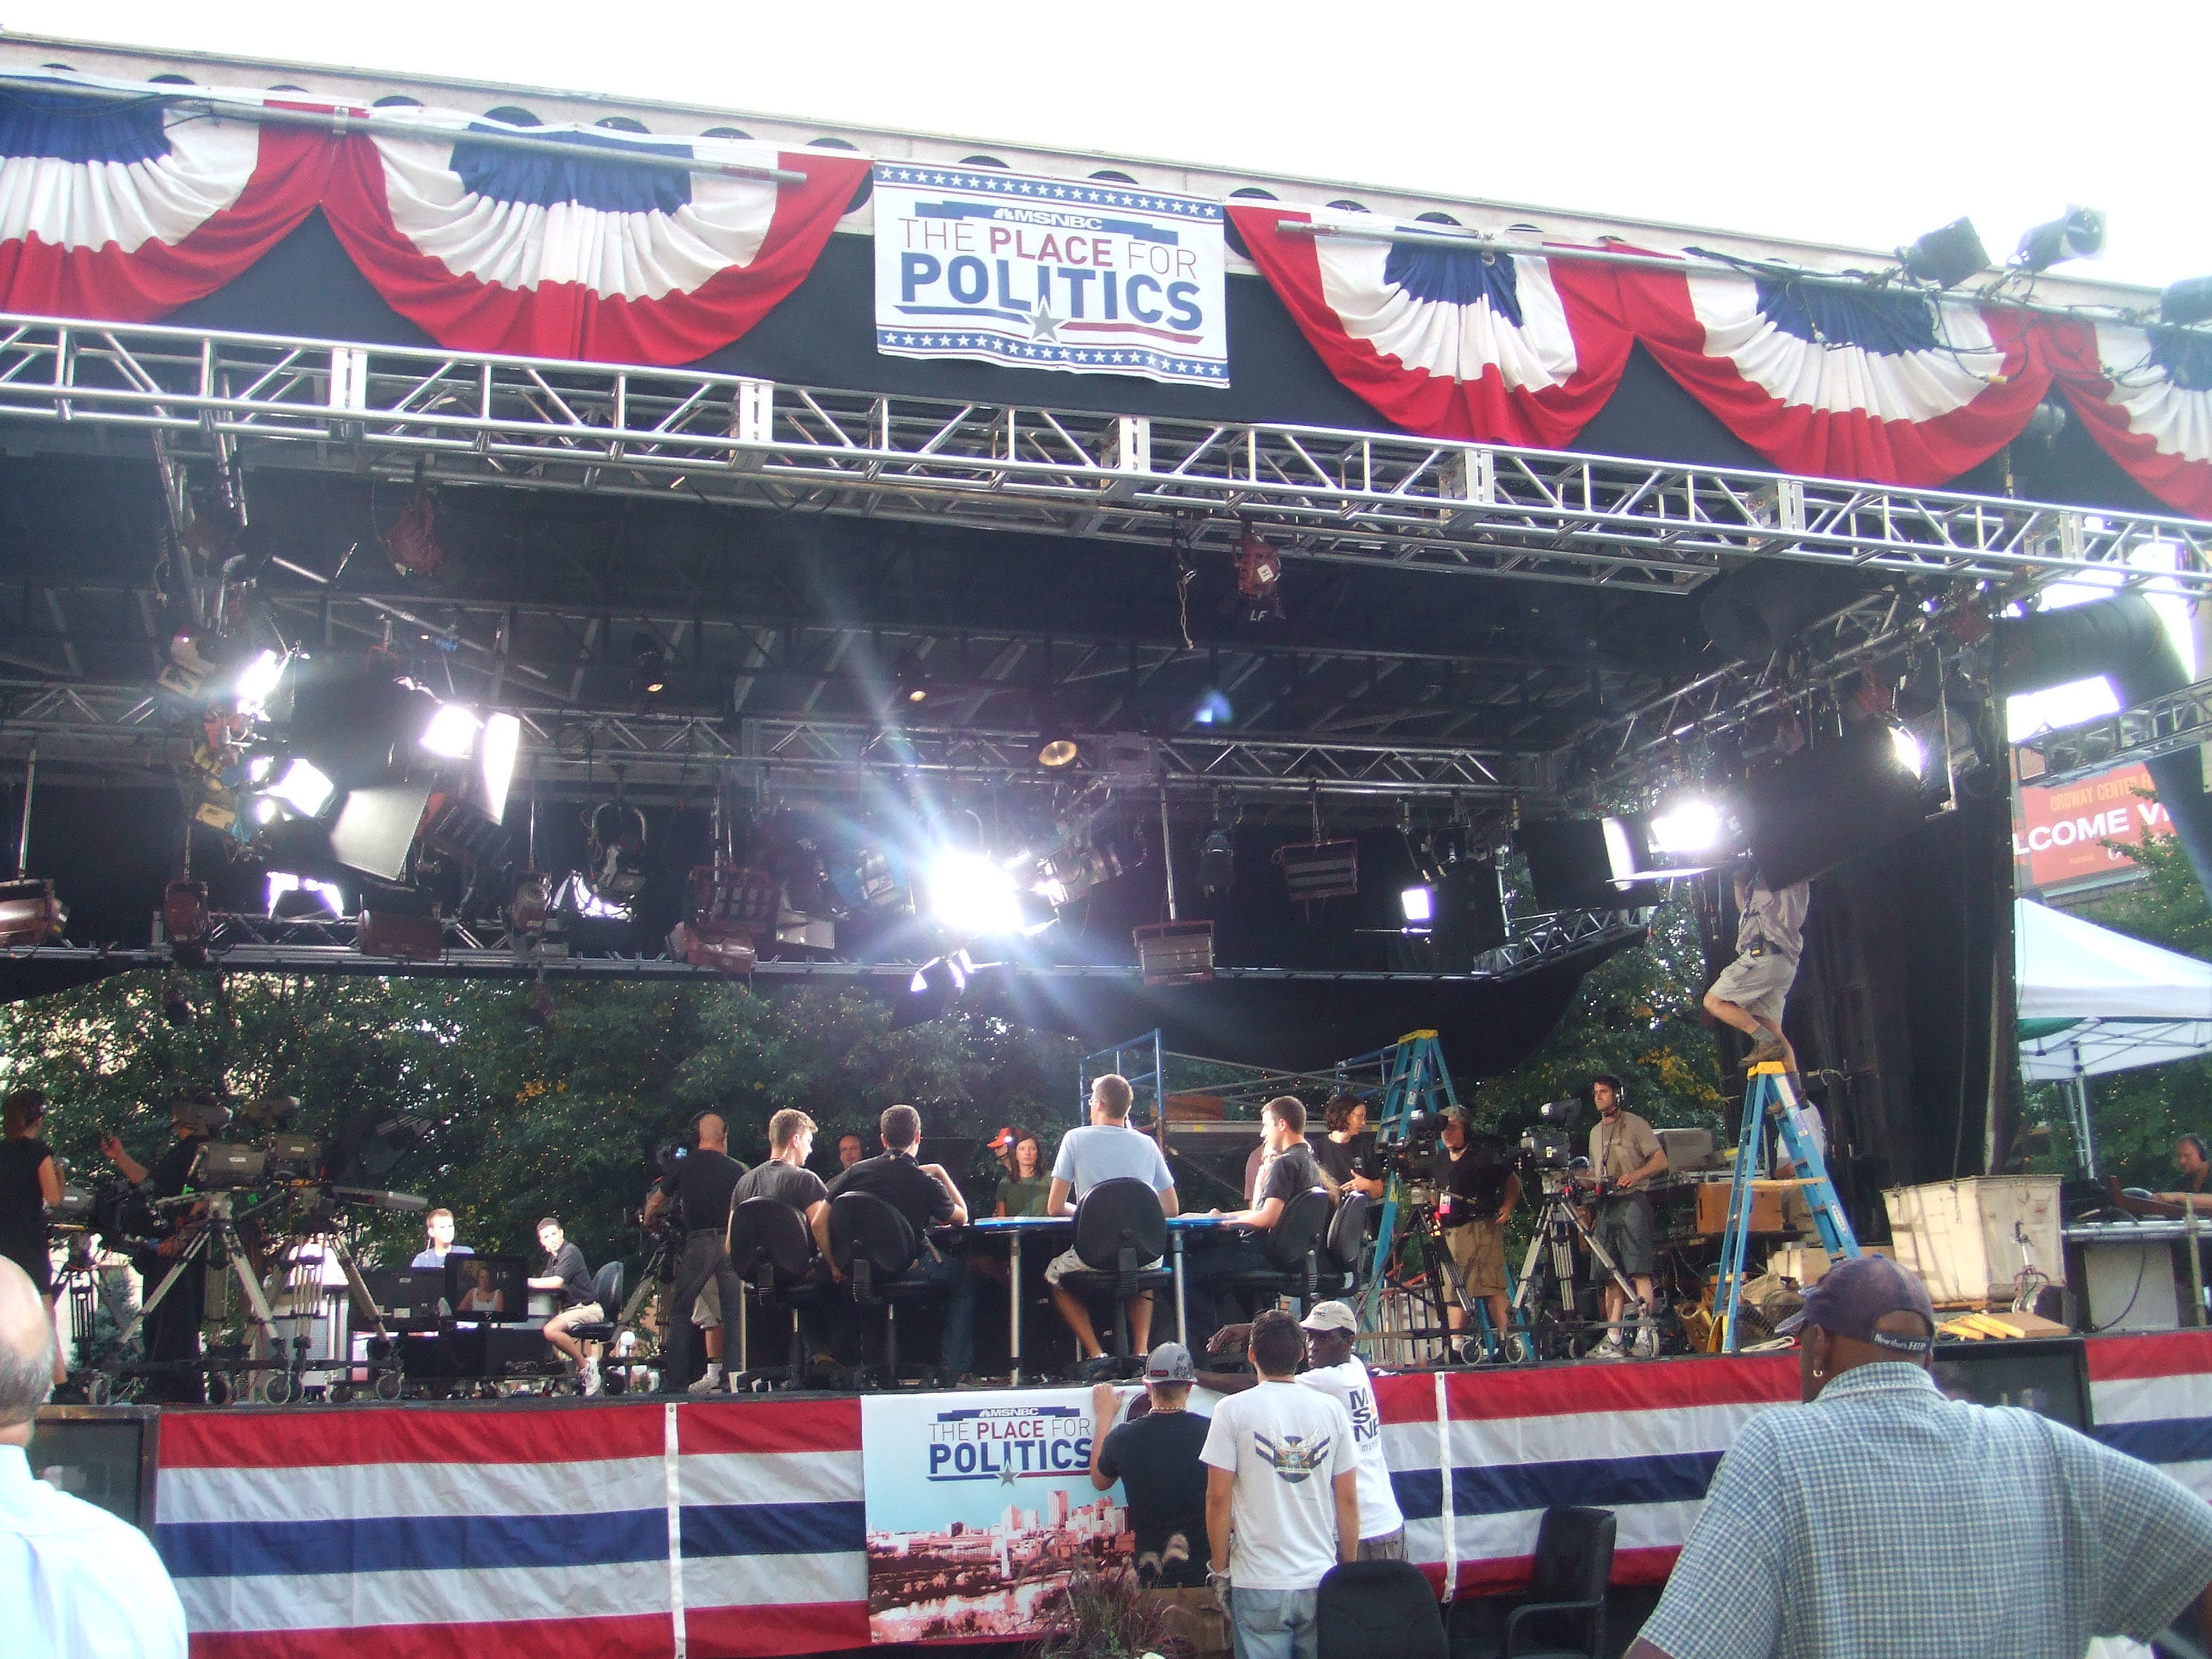 MSNBC has their tent all set up--way outside of the Excel Center.